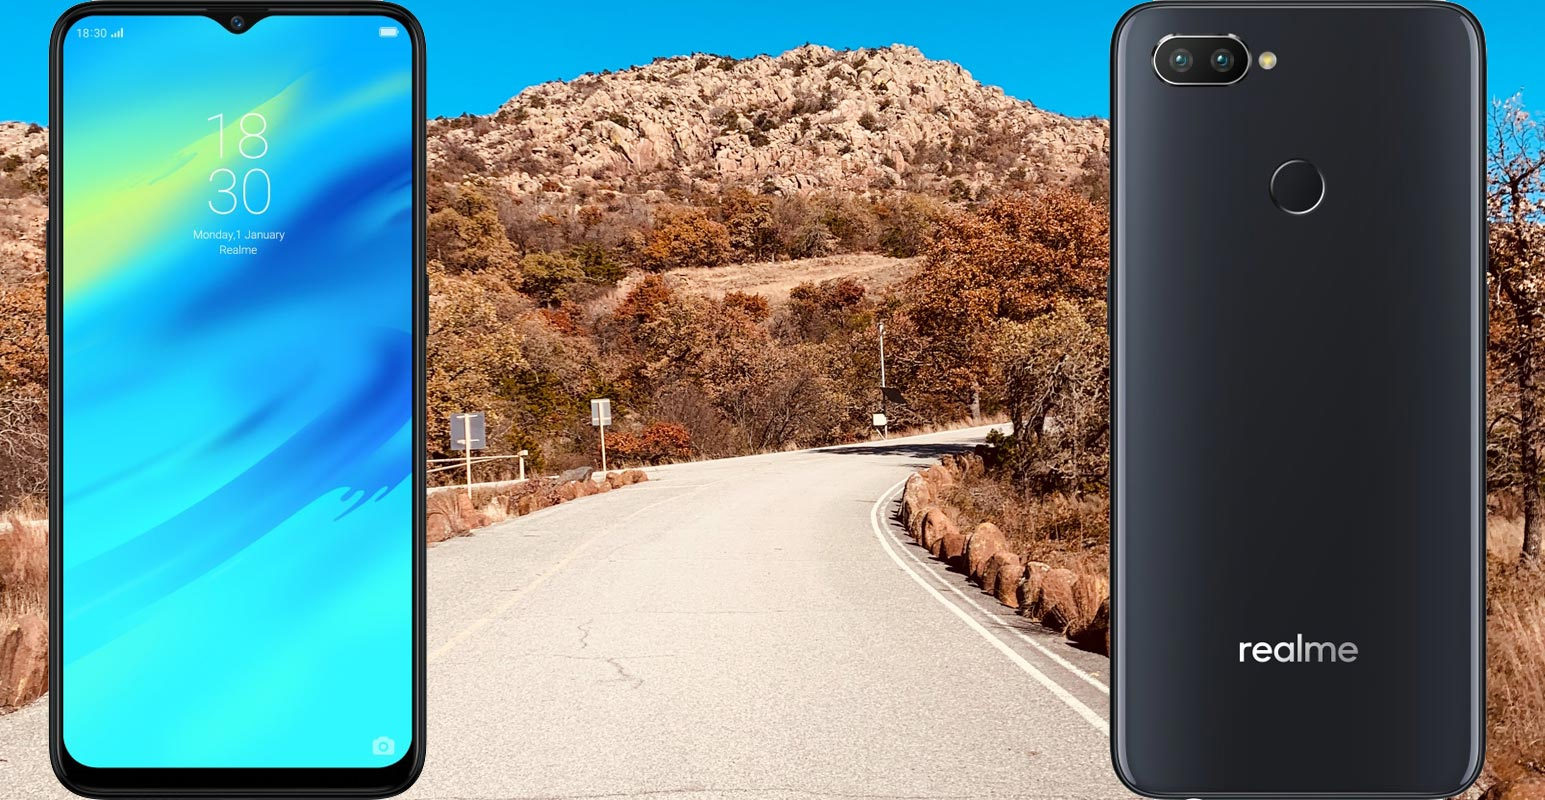 Realme 2 Pro with Country Road Side Background